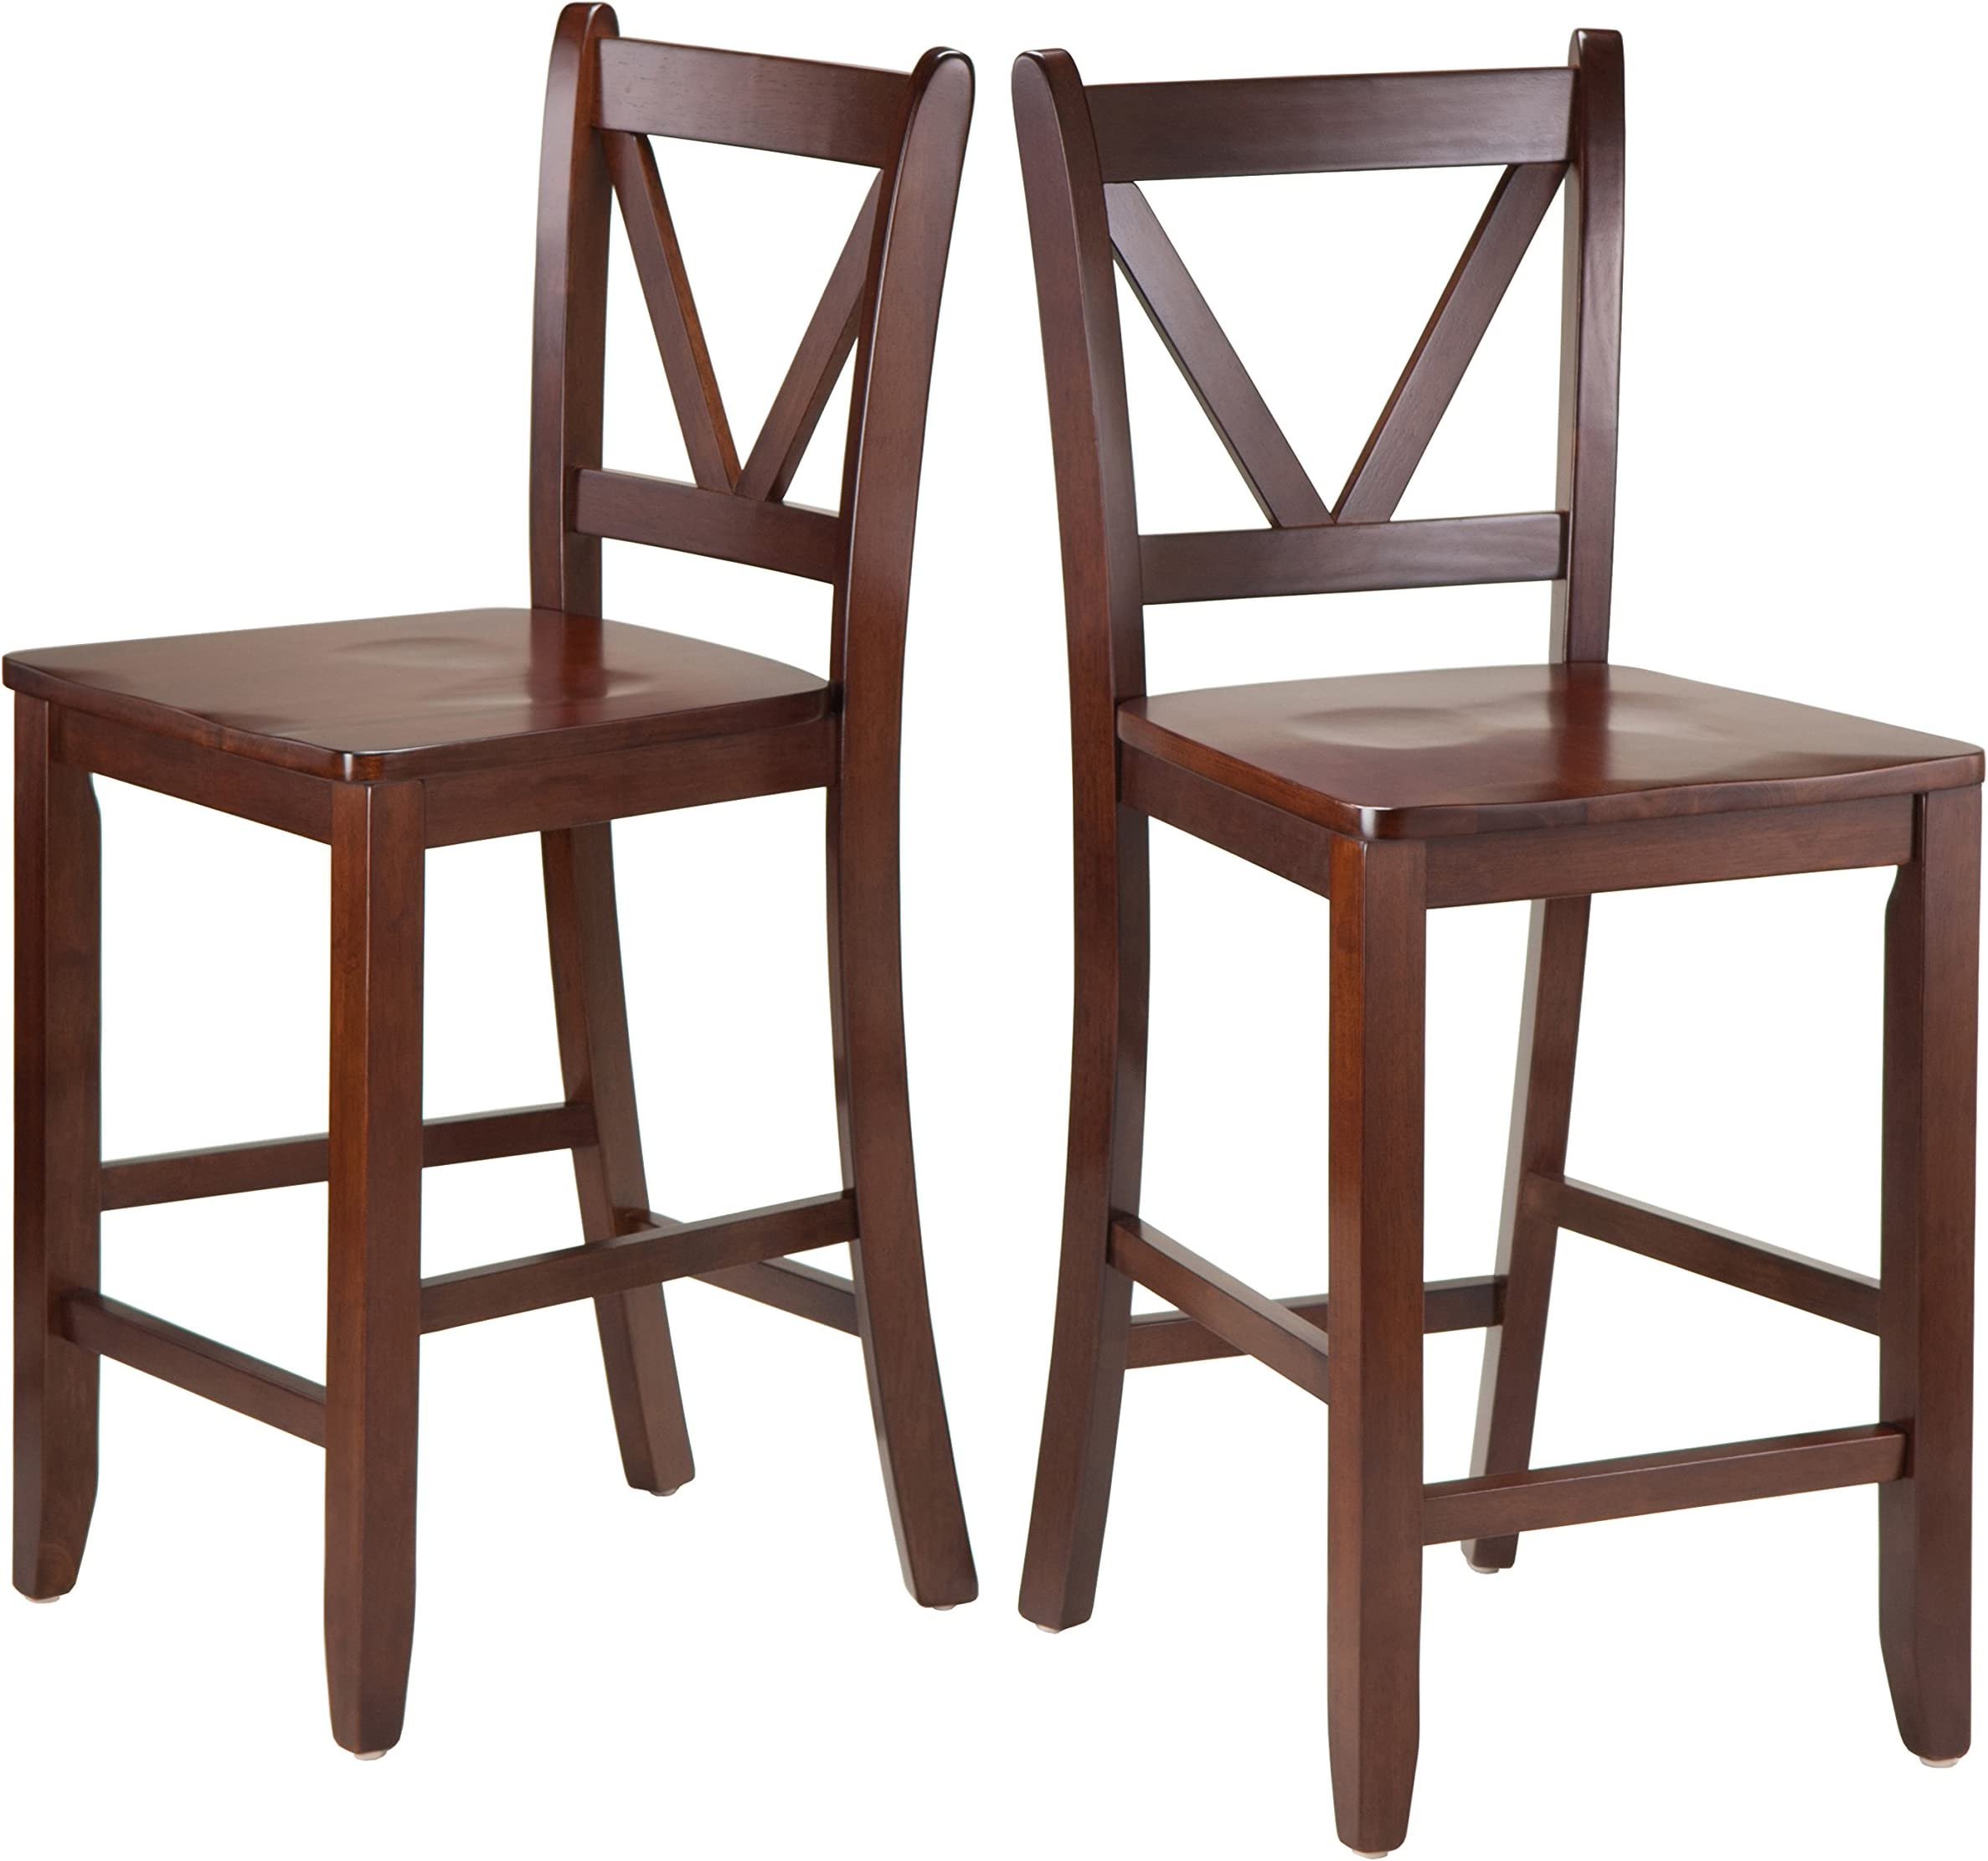 Winsome Victor 2-Piece V-Back Counter Stools 24-Inch Brown  sc 1 st  Amazon.com & Bar Stools | Amazon.com islam-shia.org